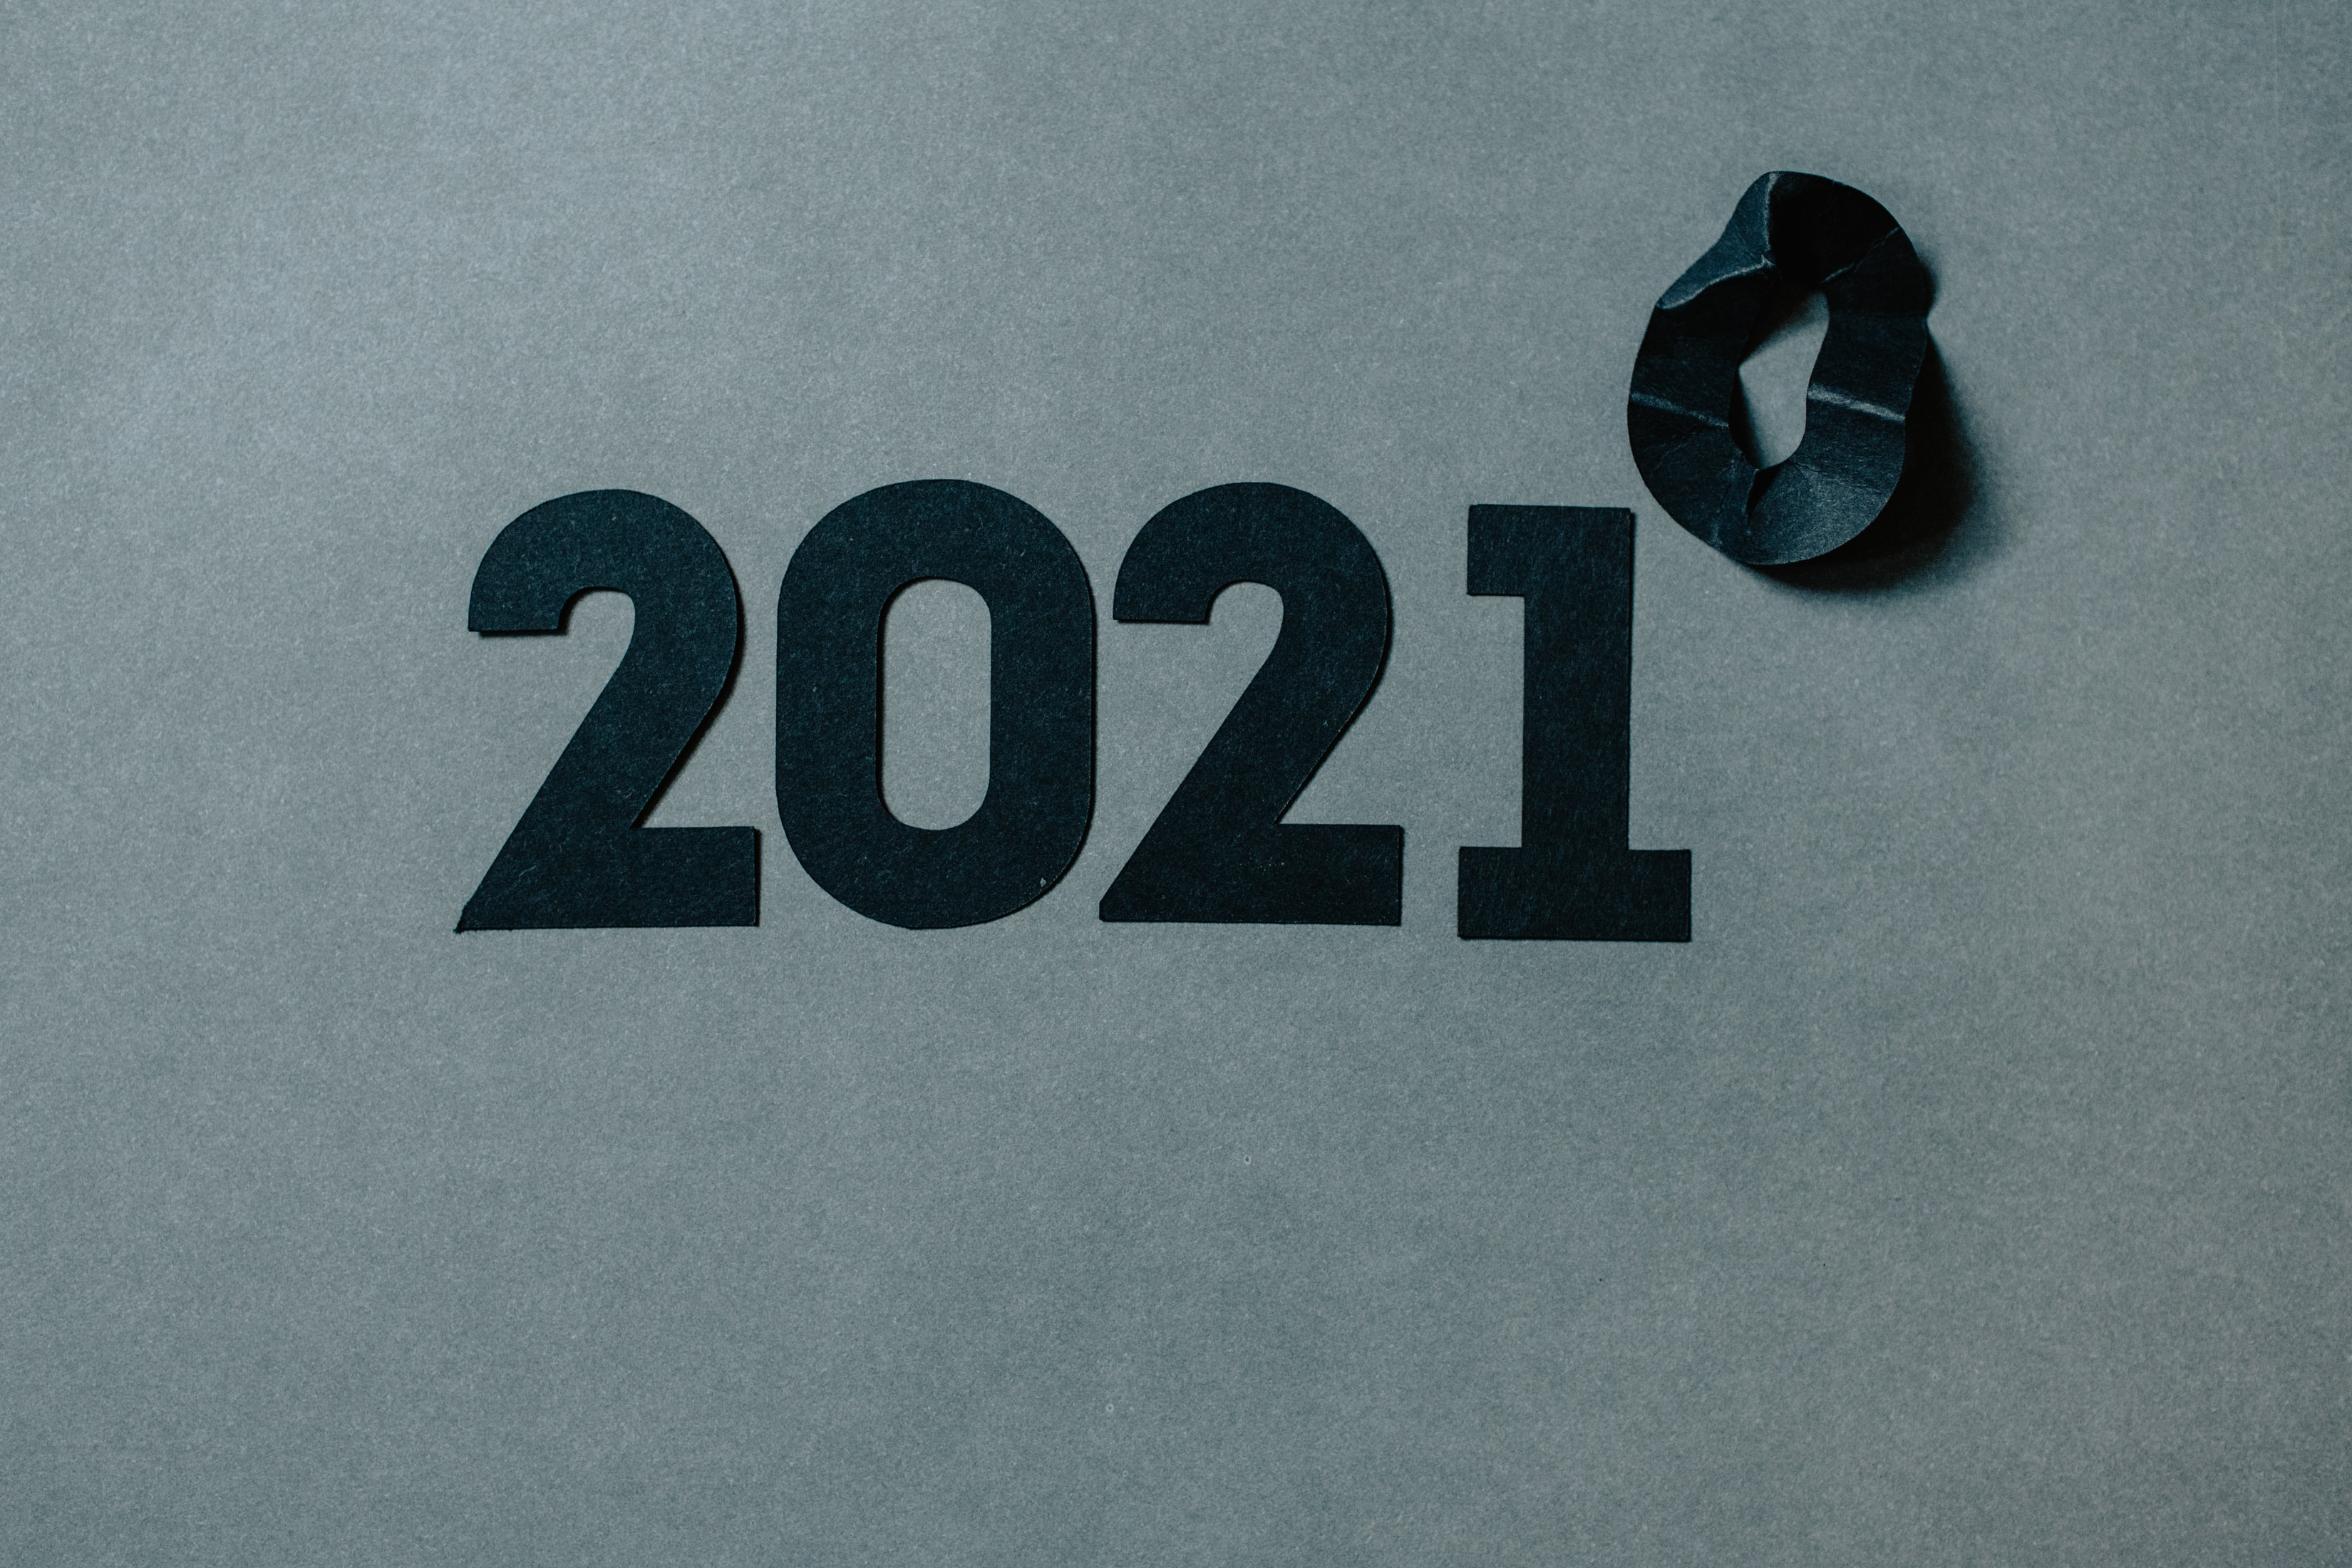 AdTech in 2021 - What to Expect?